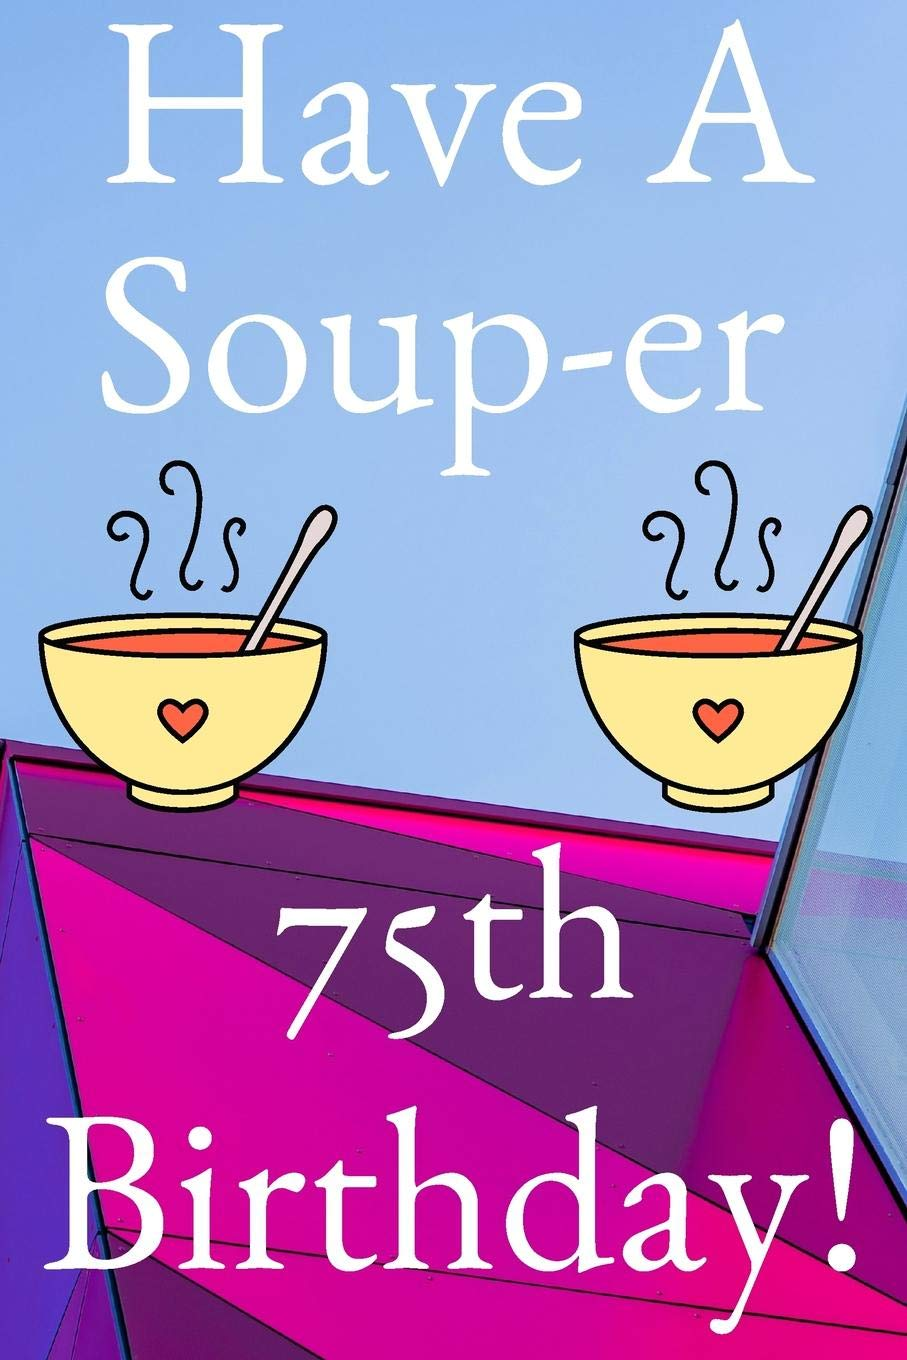 75th birthday gift clipart clipart library stock Have A Soup-er 75th Birthday: Funny 75th Birthday Gift Soup-er ... clipart library stock